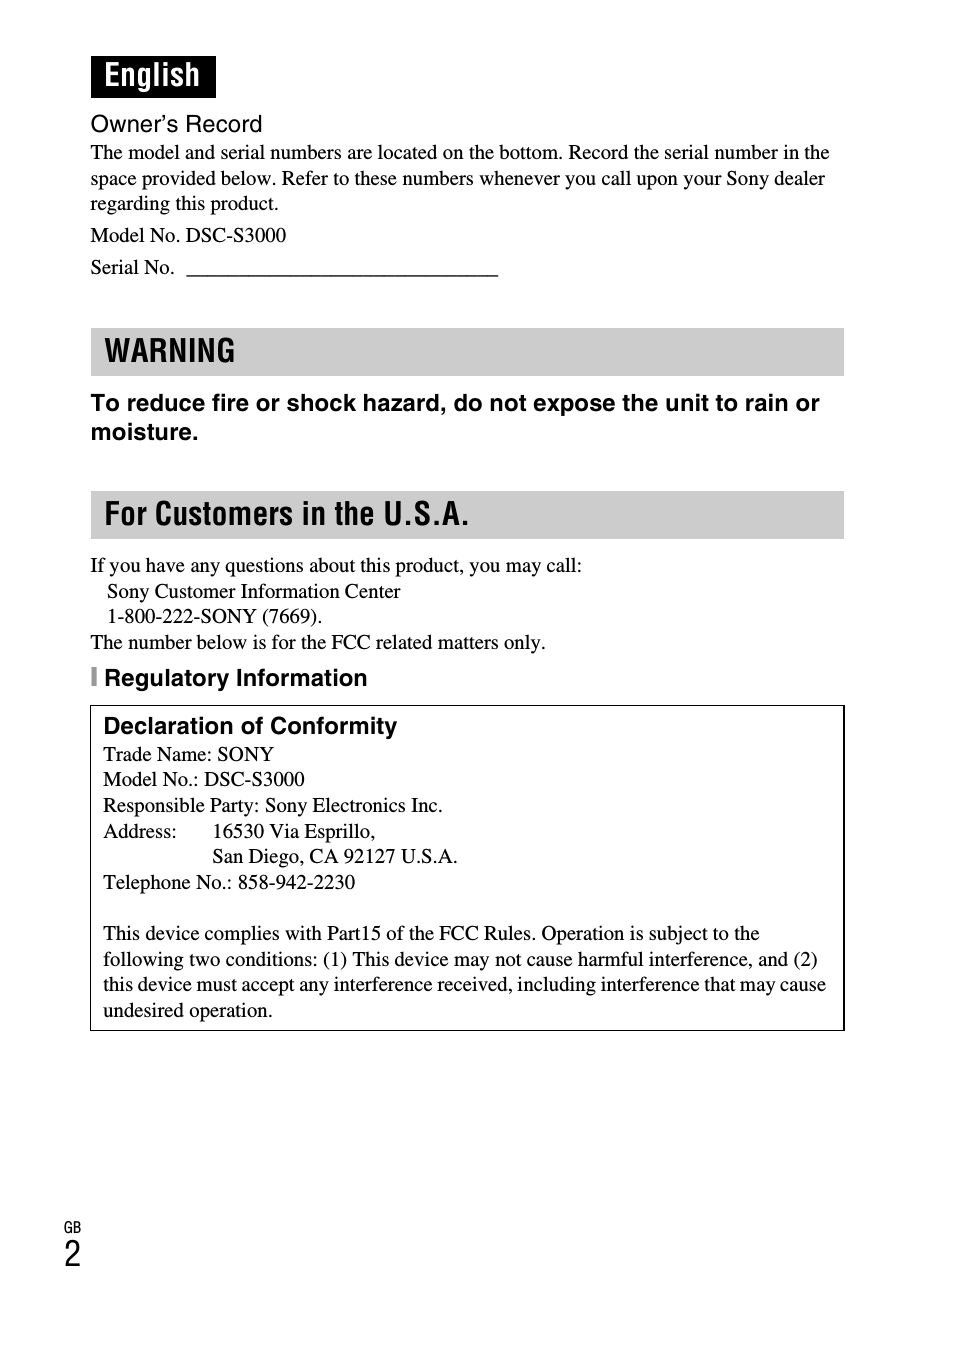 English, English warning for customers in the u.s.a